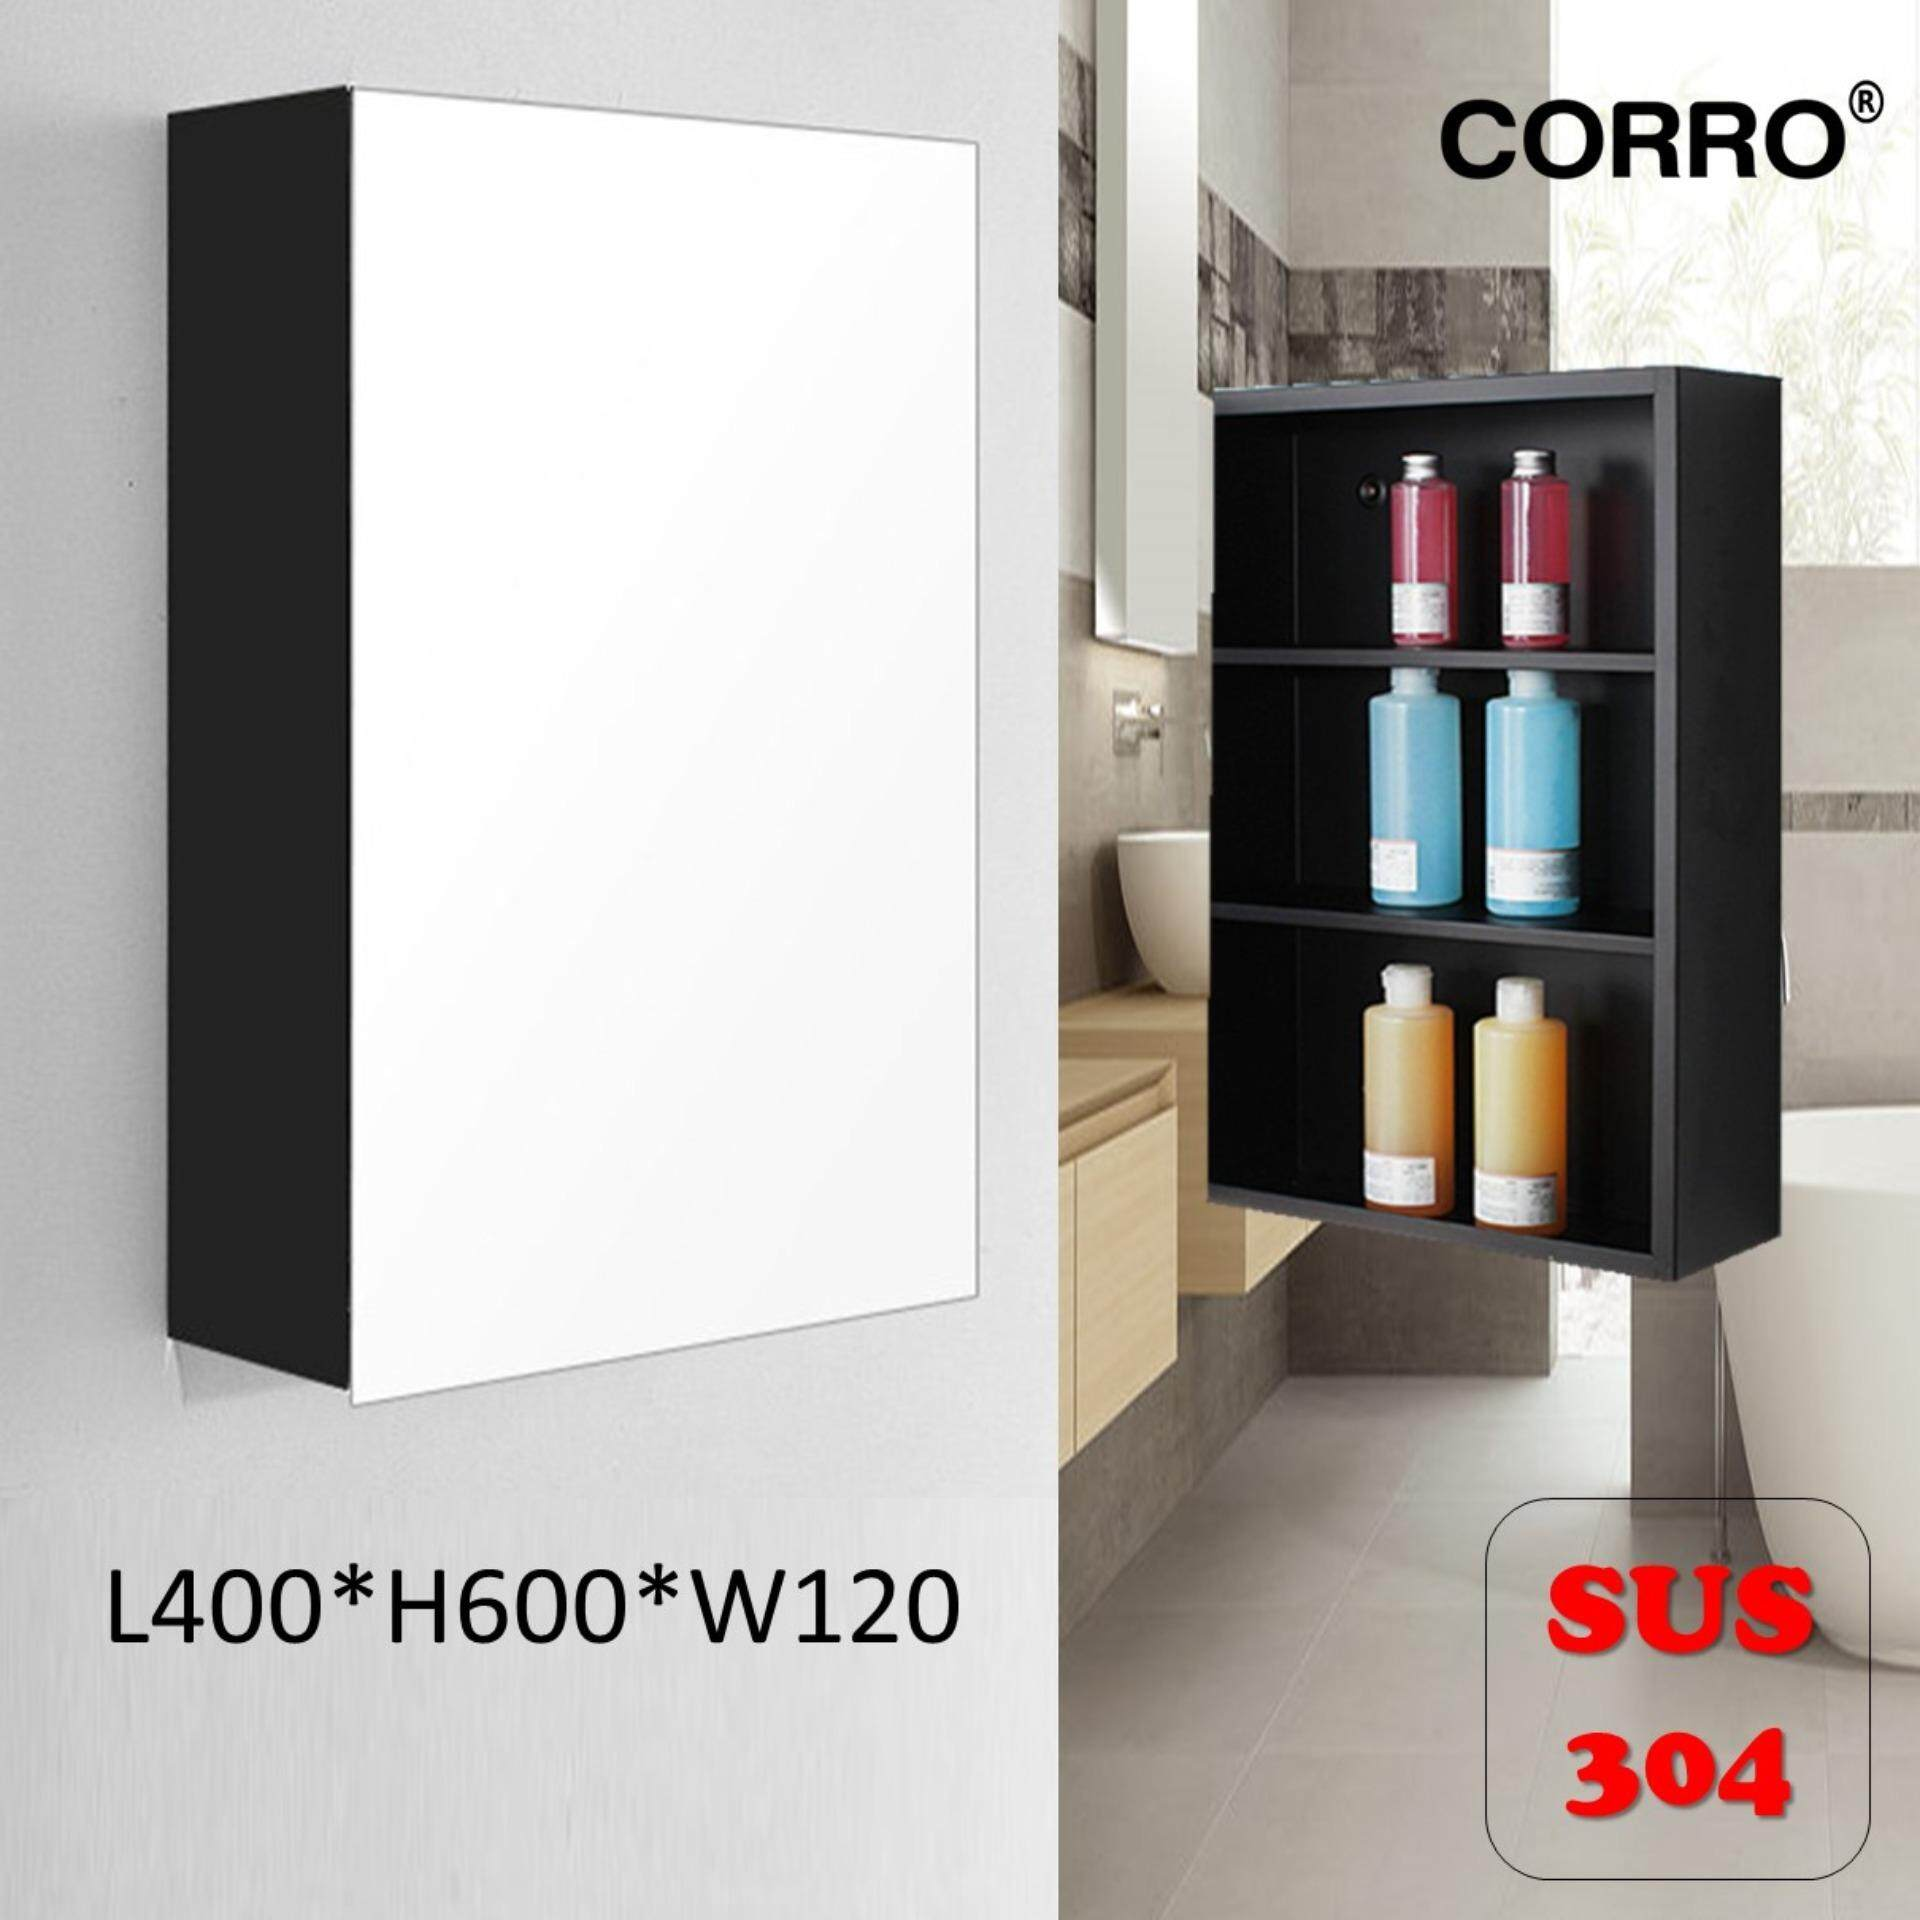 CORRO SUS304 High Quality Stainless Steel Multiple Purpose Mirror Cabinet - Black (400x600)